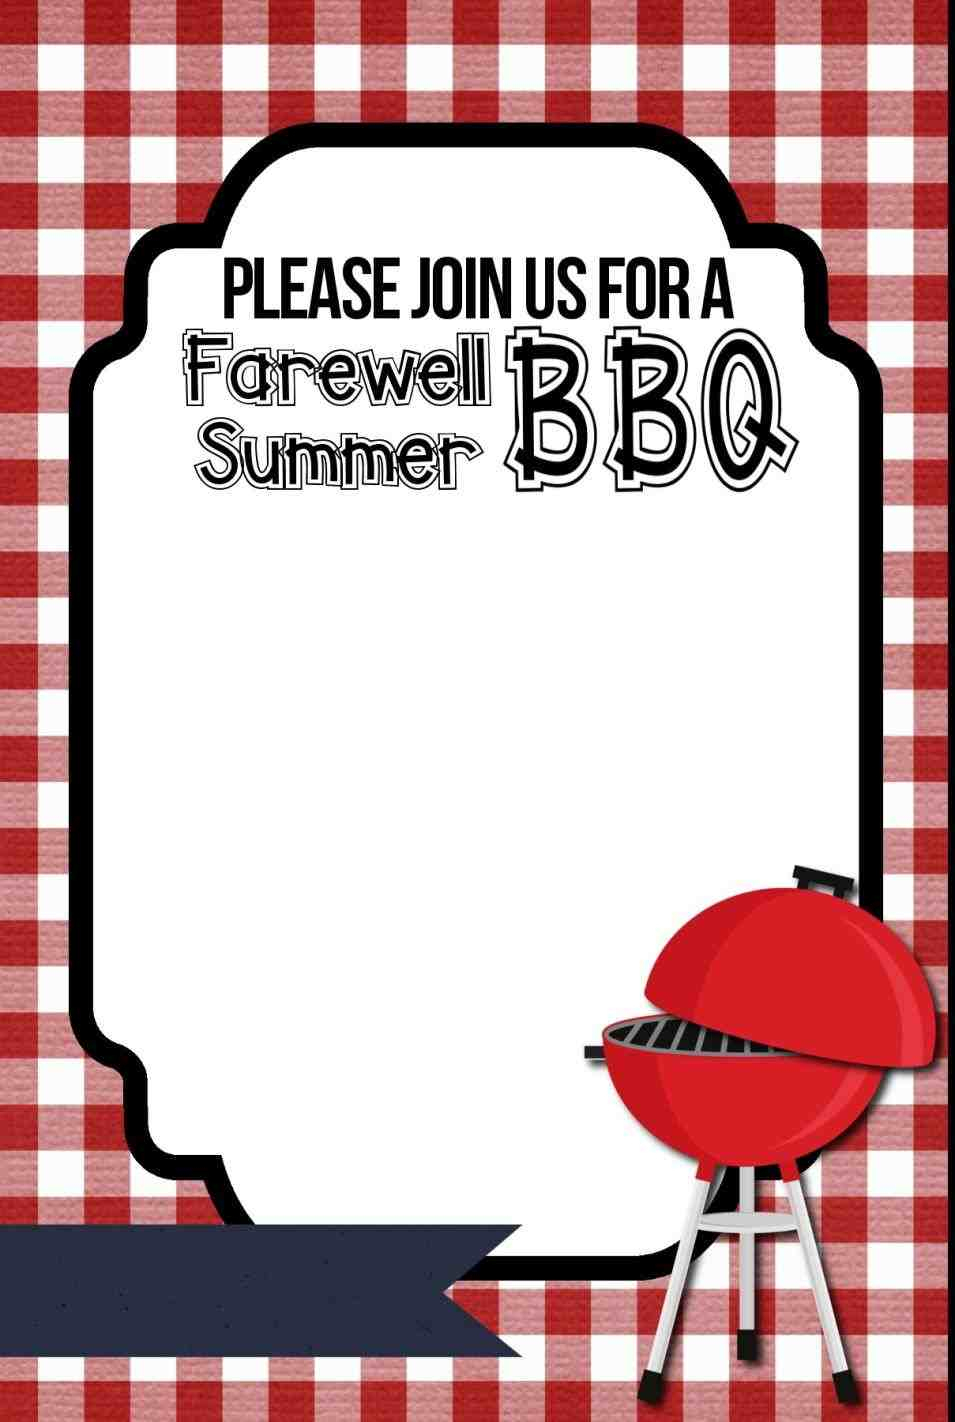 Cookout Template Free Printable Cookout Invitations Invitation - Free Printable Cookout Invitations